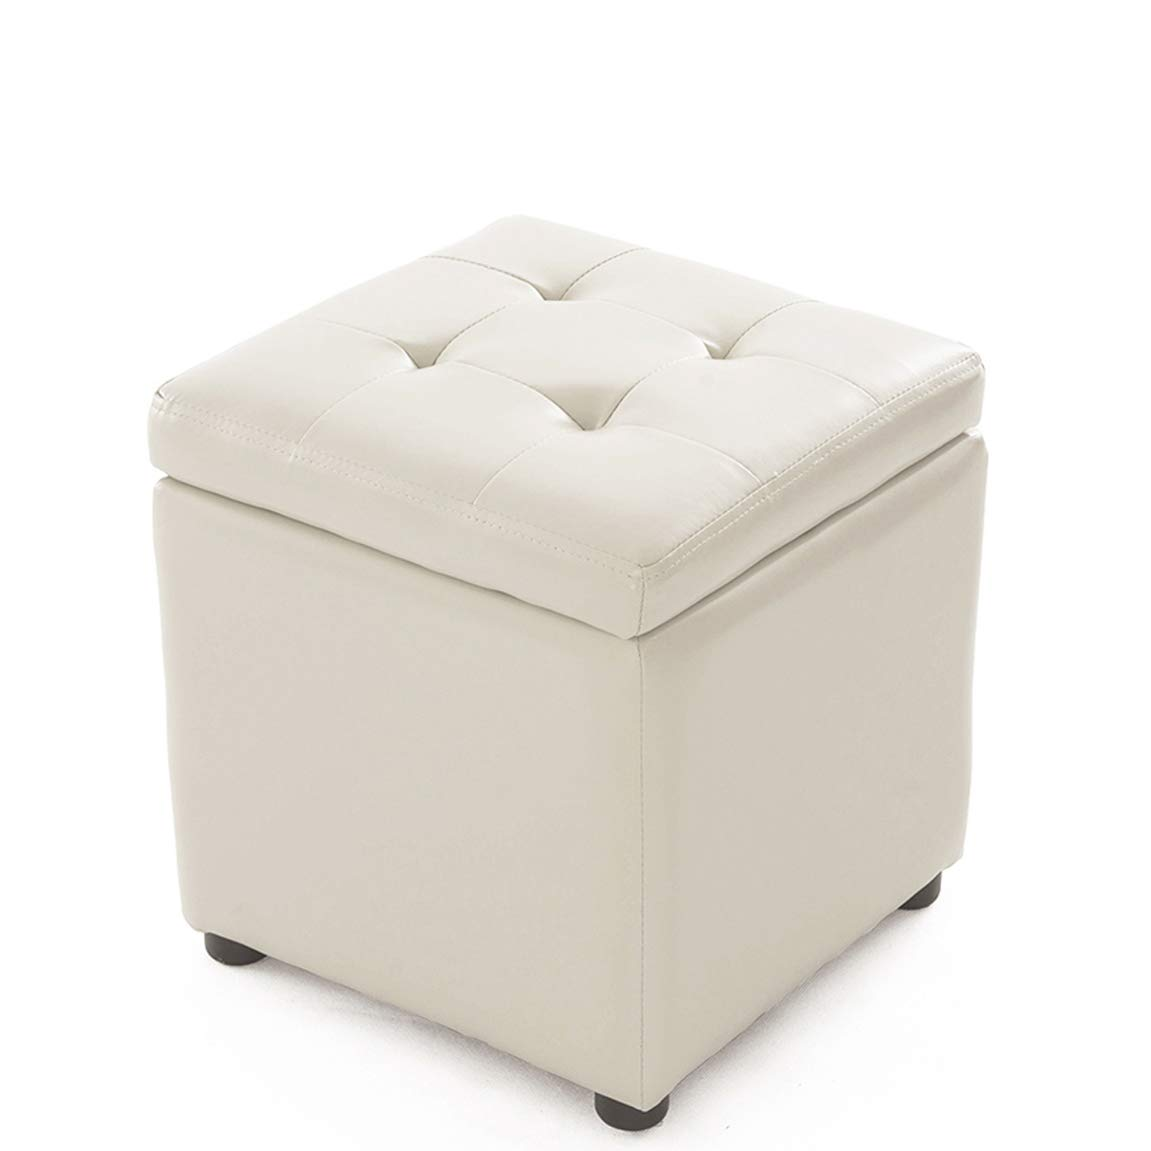 L 404040 cm HLQW Receiving Stools, Changing shoes, Stools, Halls, Sofas, Stools, Storage Stools, Low Stools, Footstools, Wearing shoes, Stools, Small Stools, White (Size   S 34  34  36 cm)